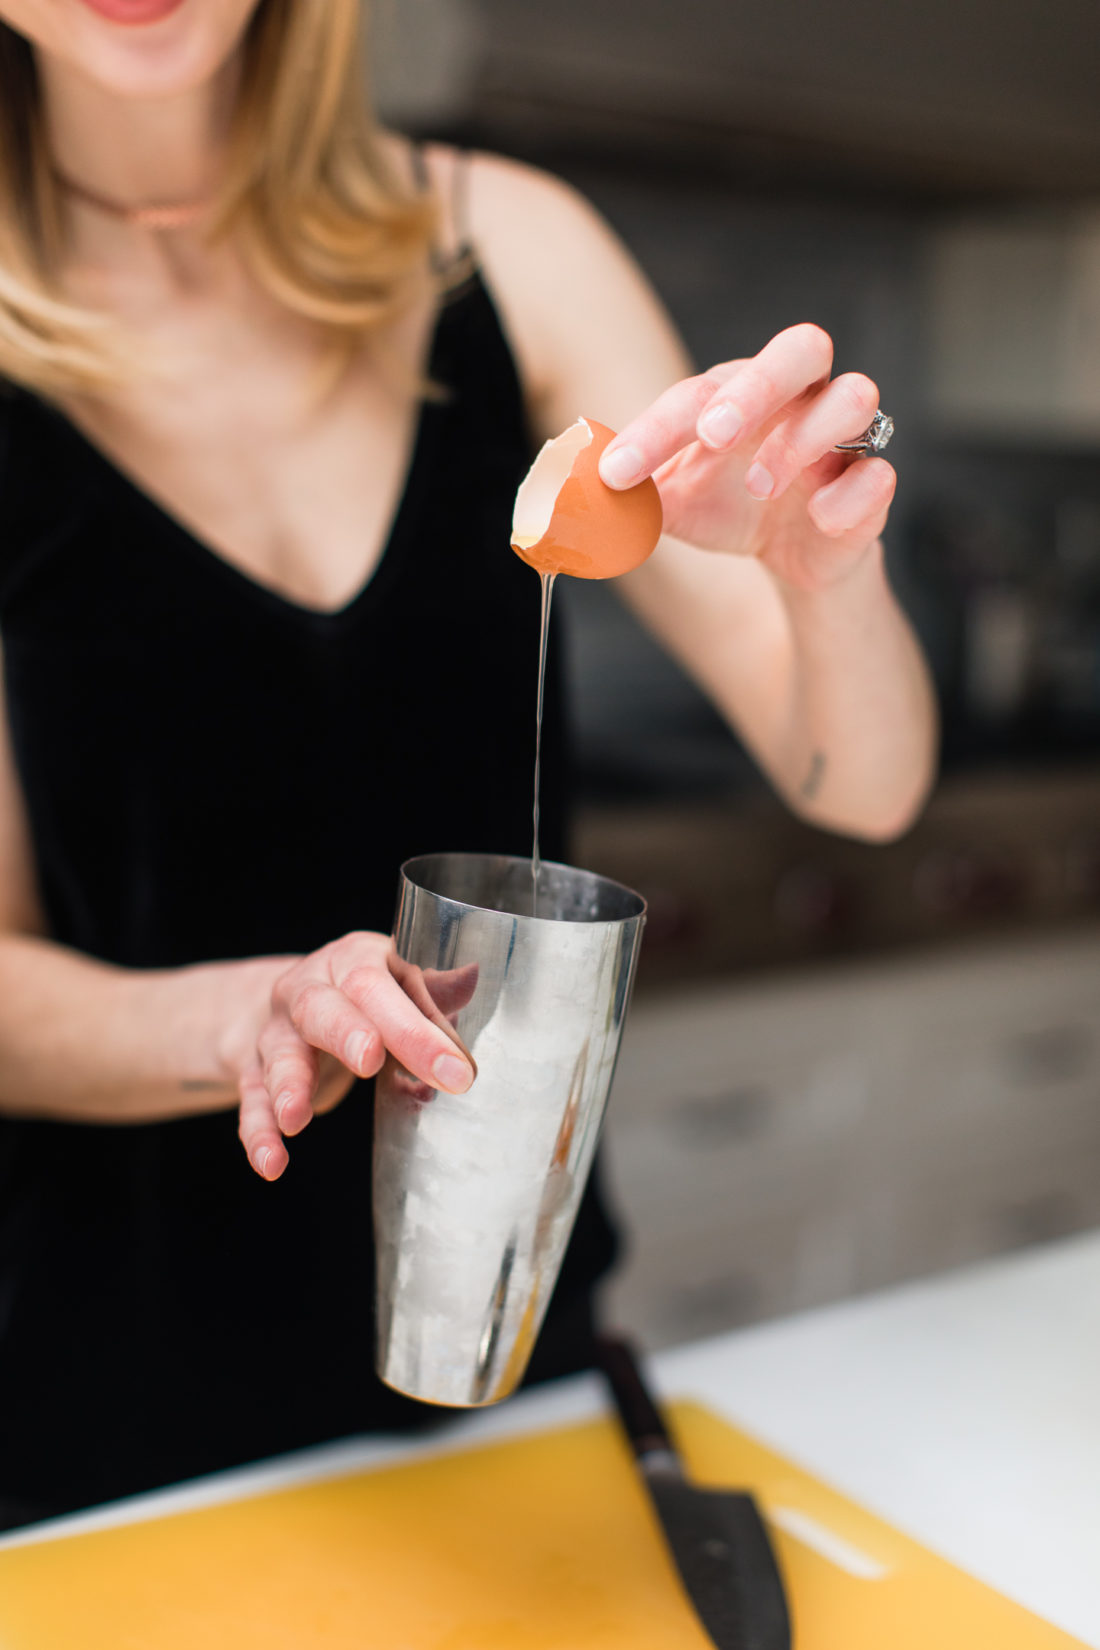 Eva Amurri Martino adds a splash of egg white to a whiskey sour